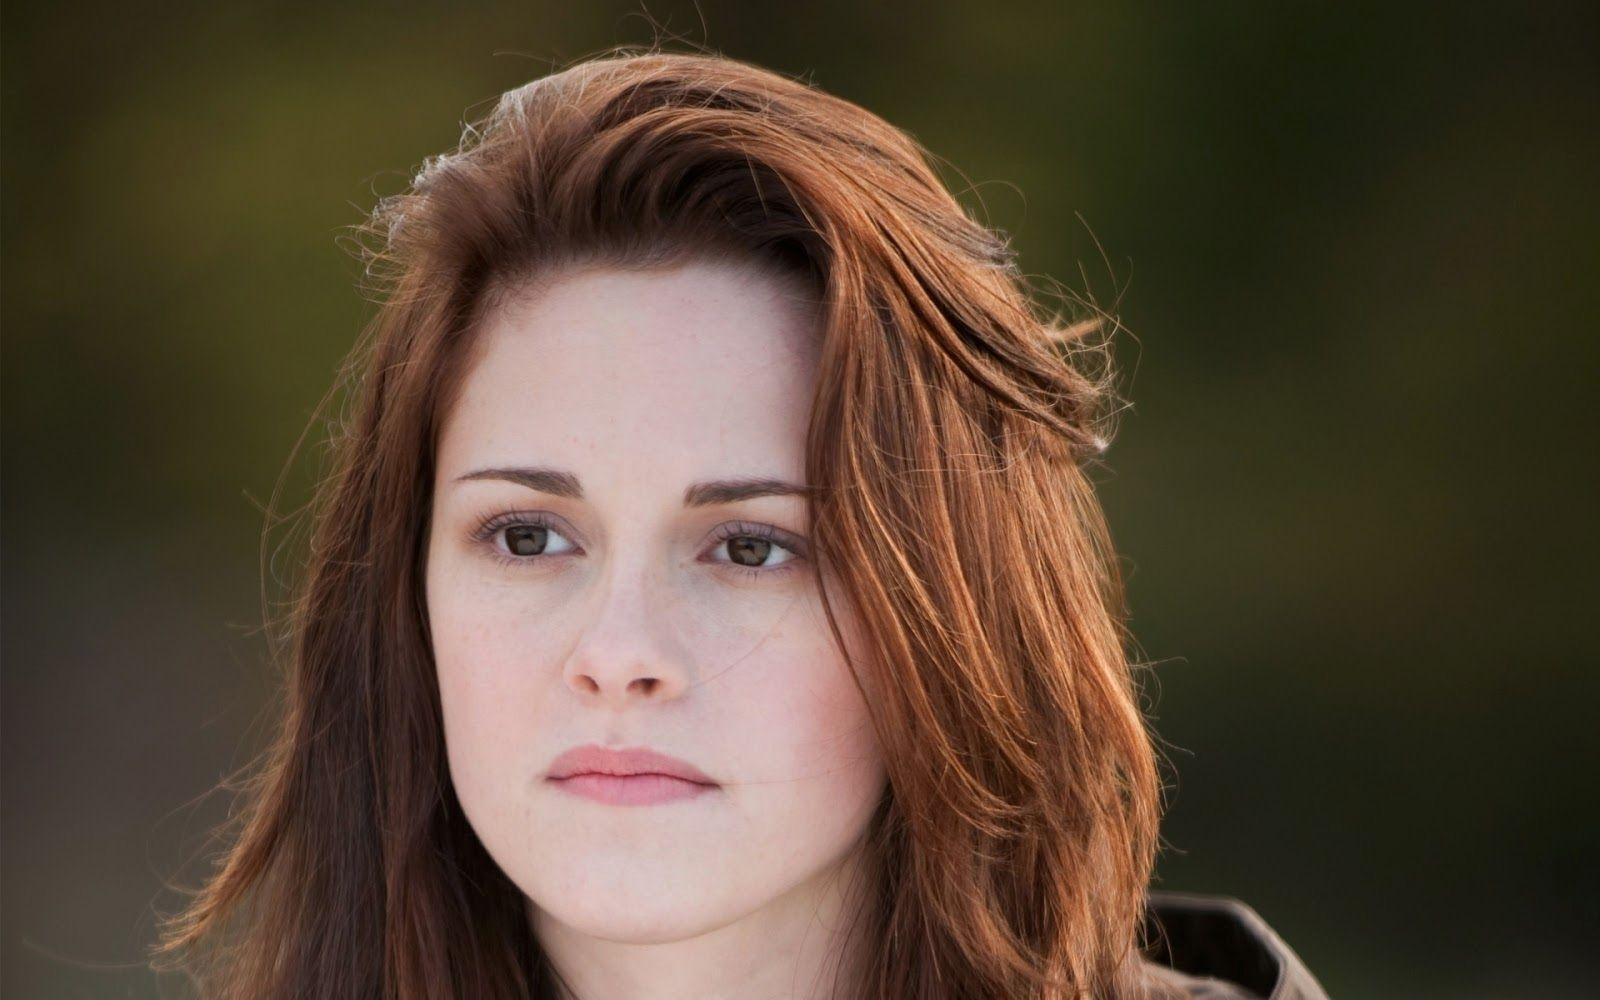 hollywood actress wallpapers, best hollywood actress images - superb